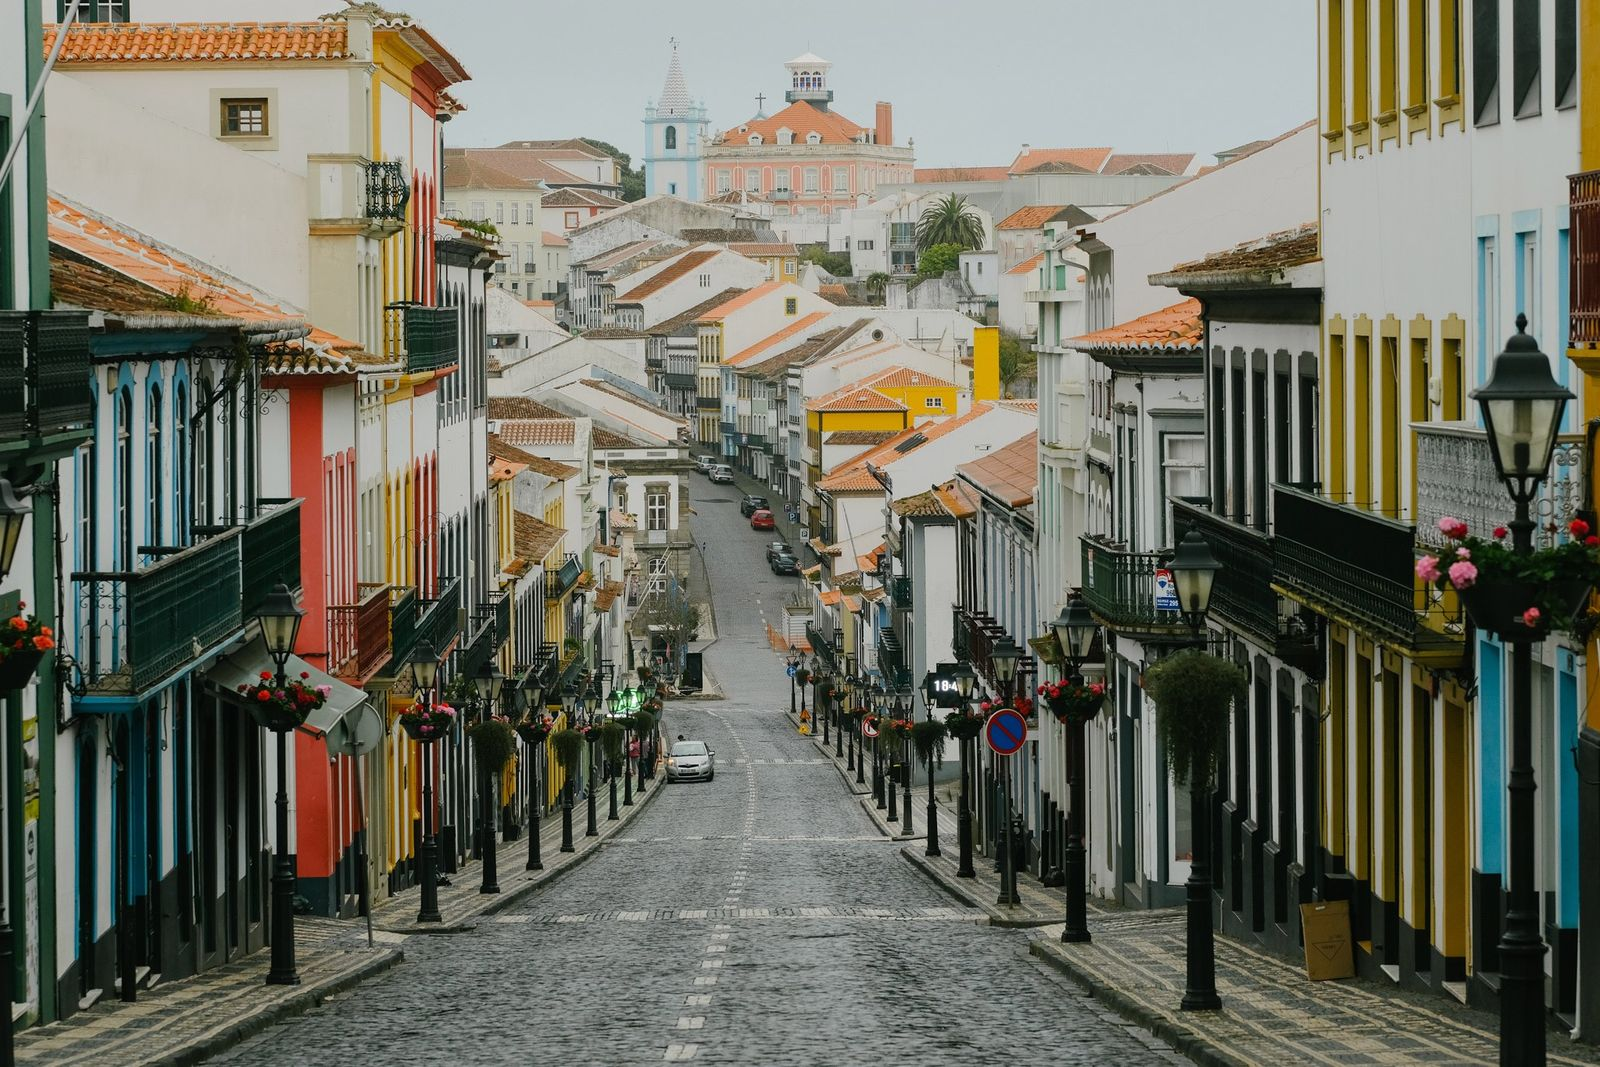 On April 3, 2020, the main street of Angra do Heroísmo hosts cheery flowers but few ...